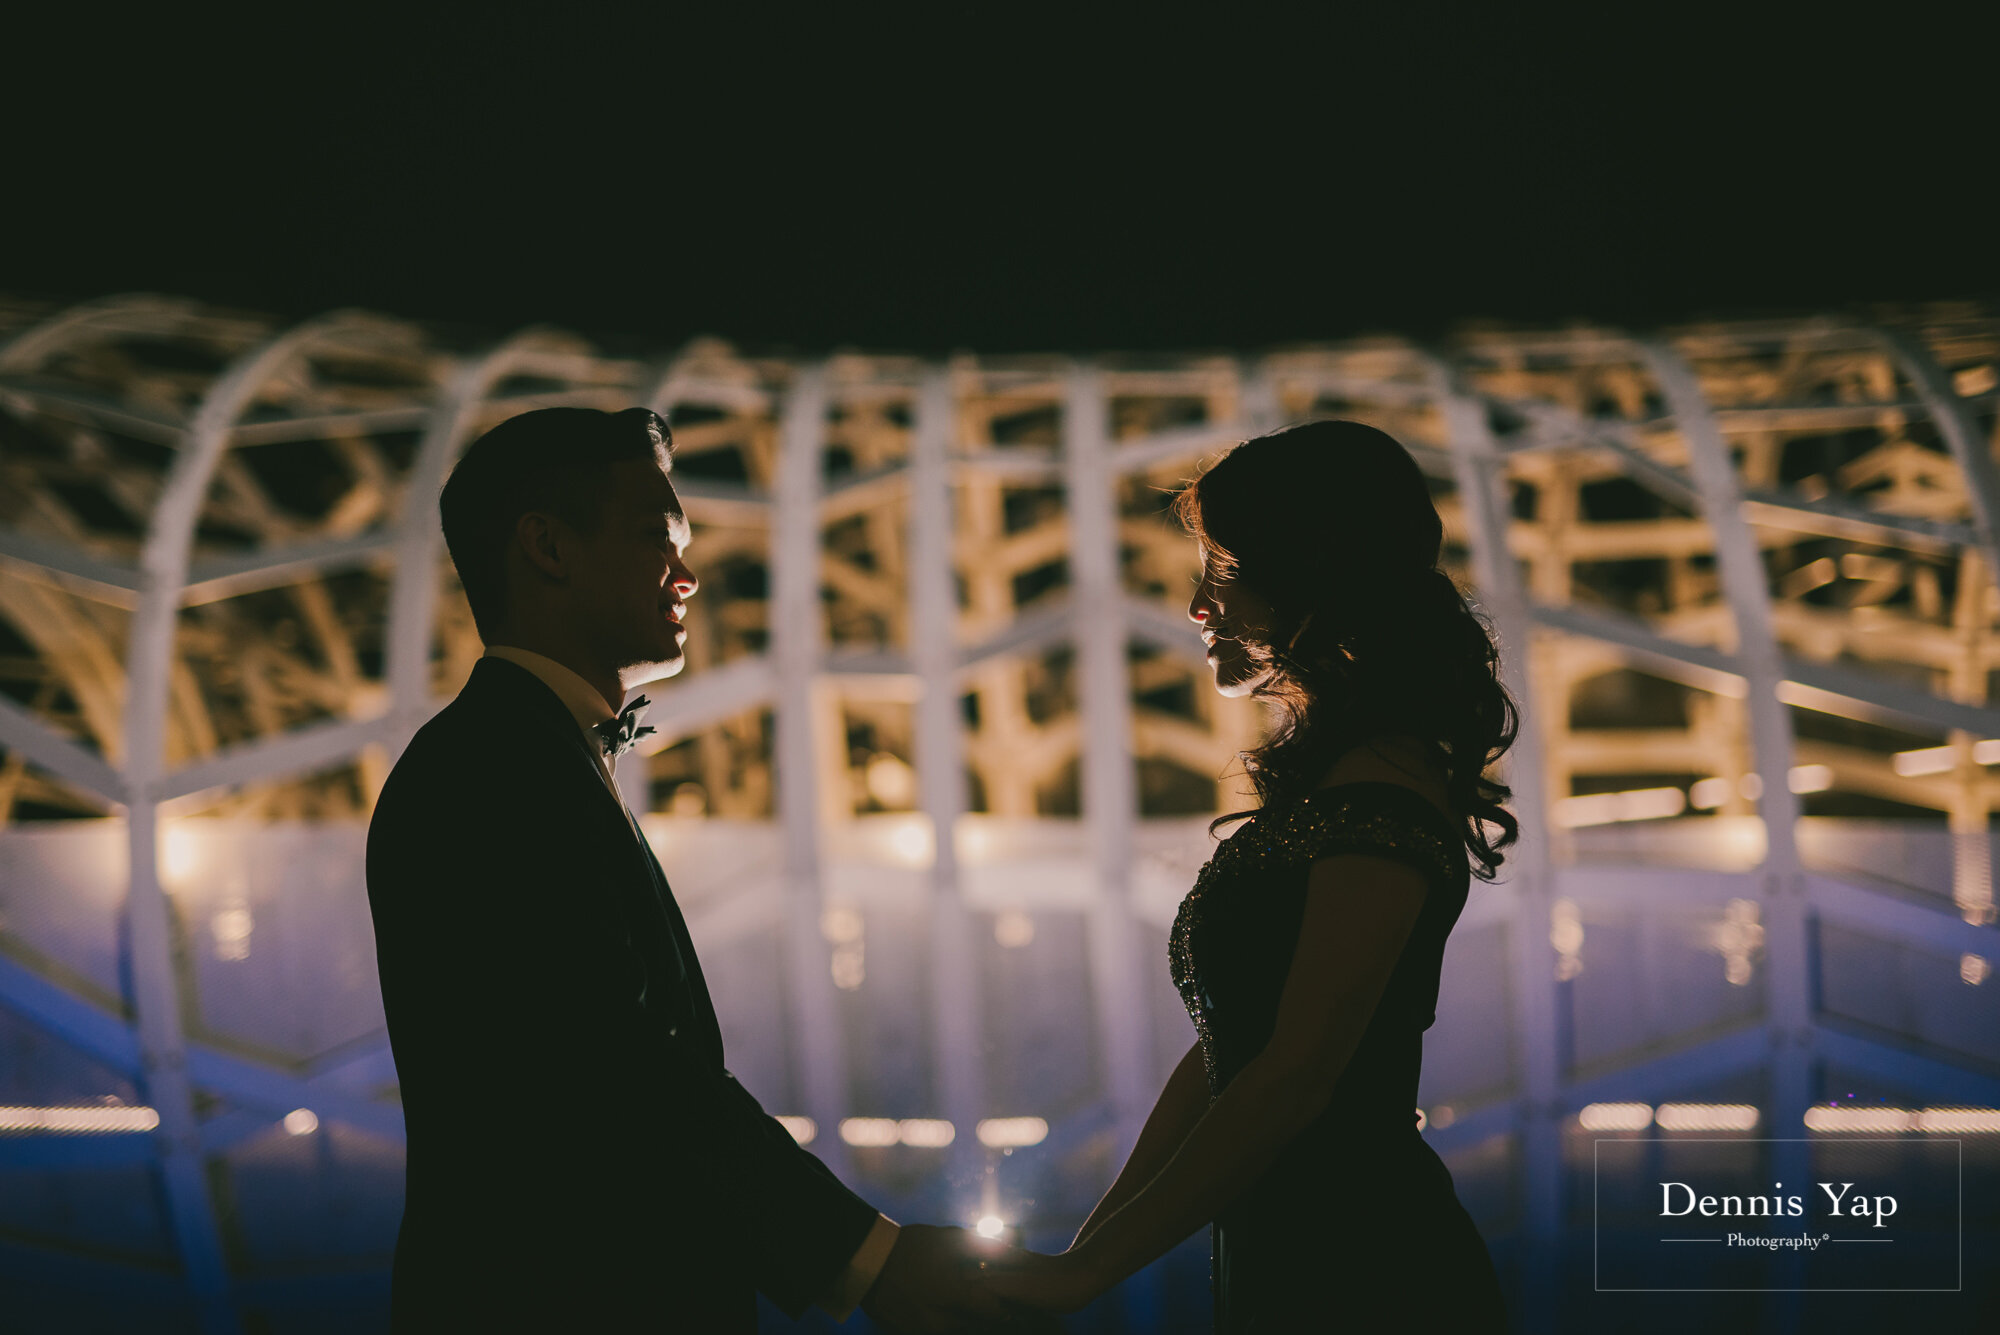 kevin junie melbourne pre wedding lifestyle natural dennis yap photography malaysia top wedding photographer-22.jpg